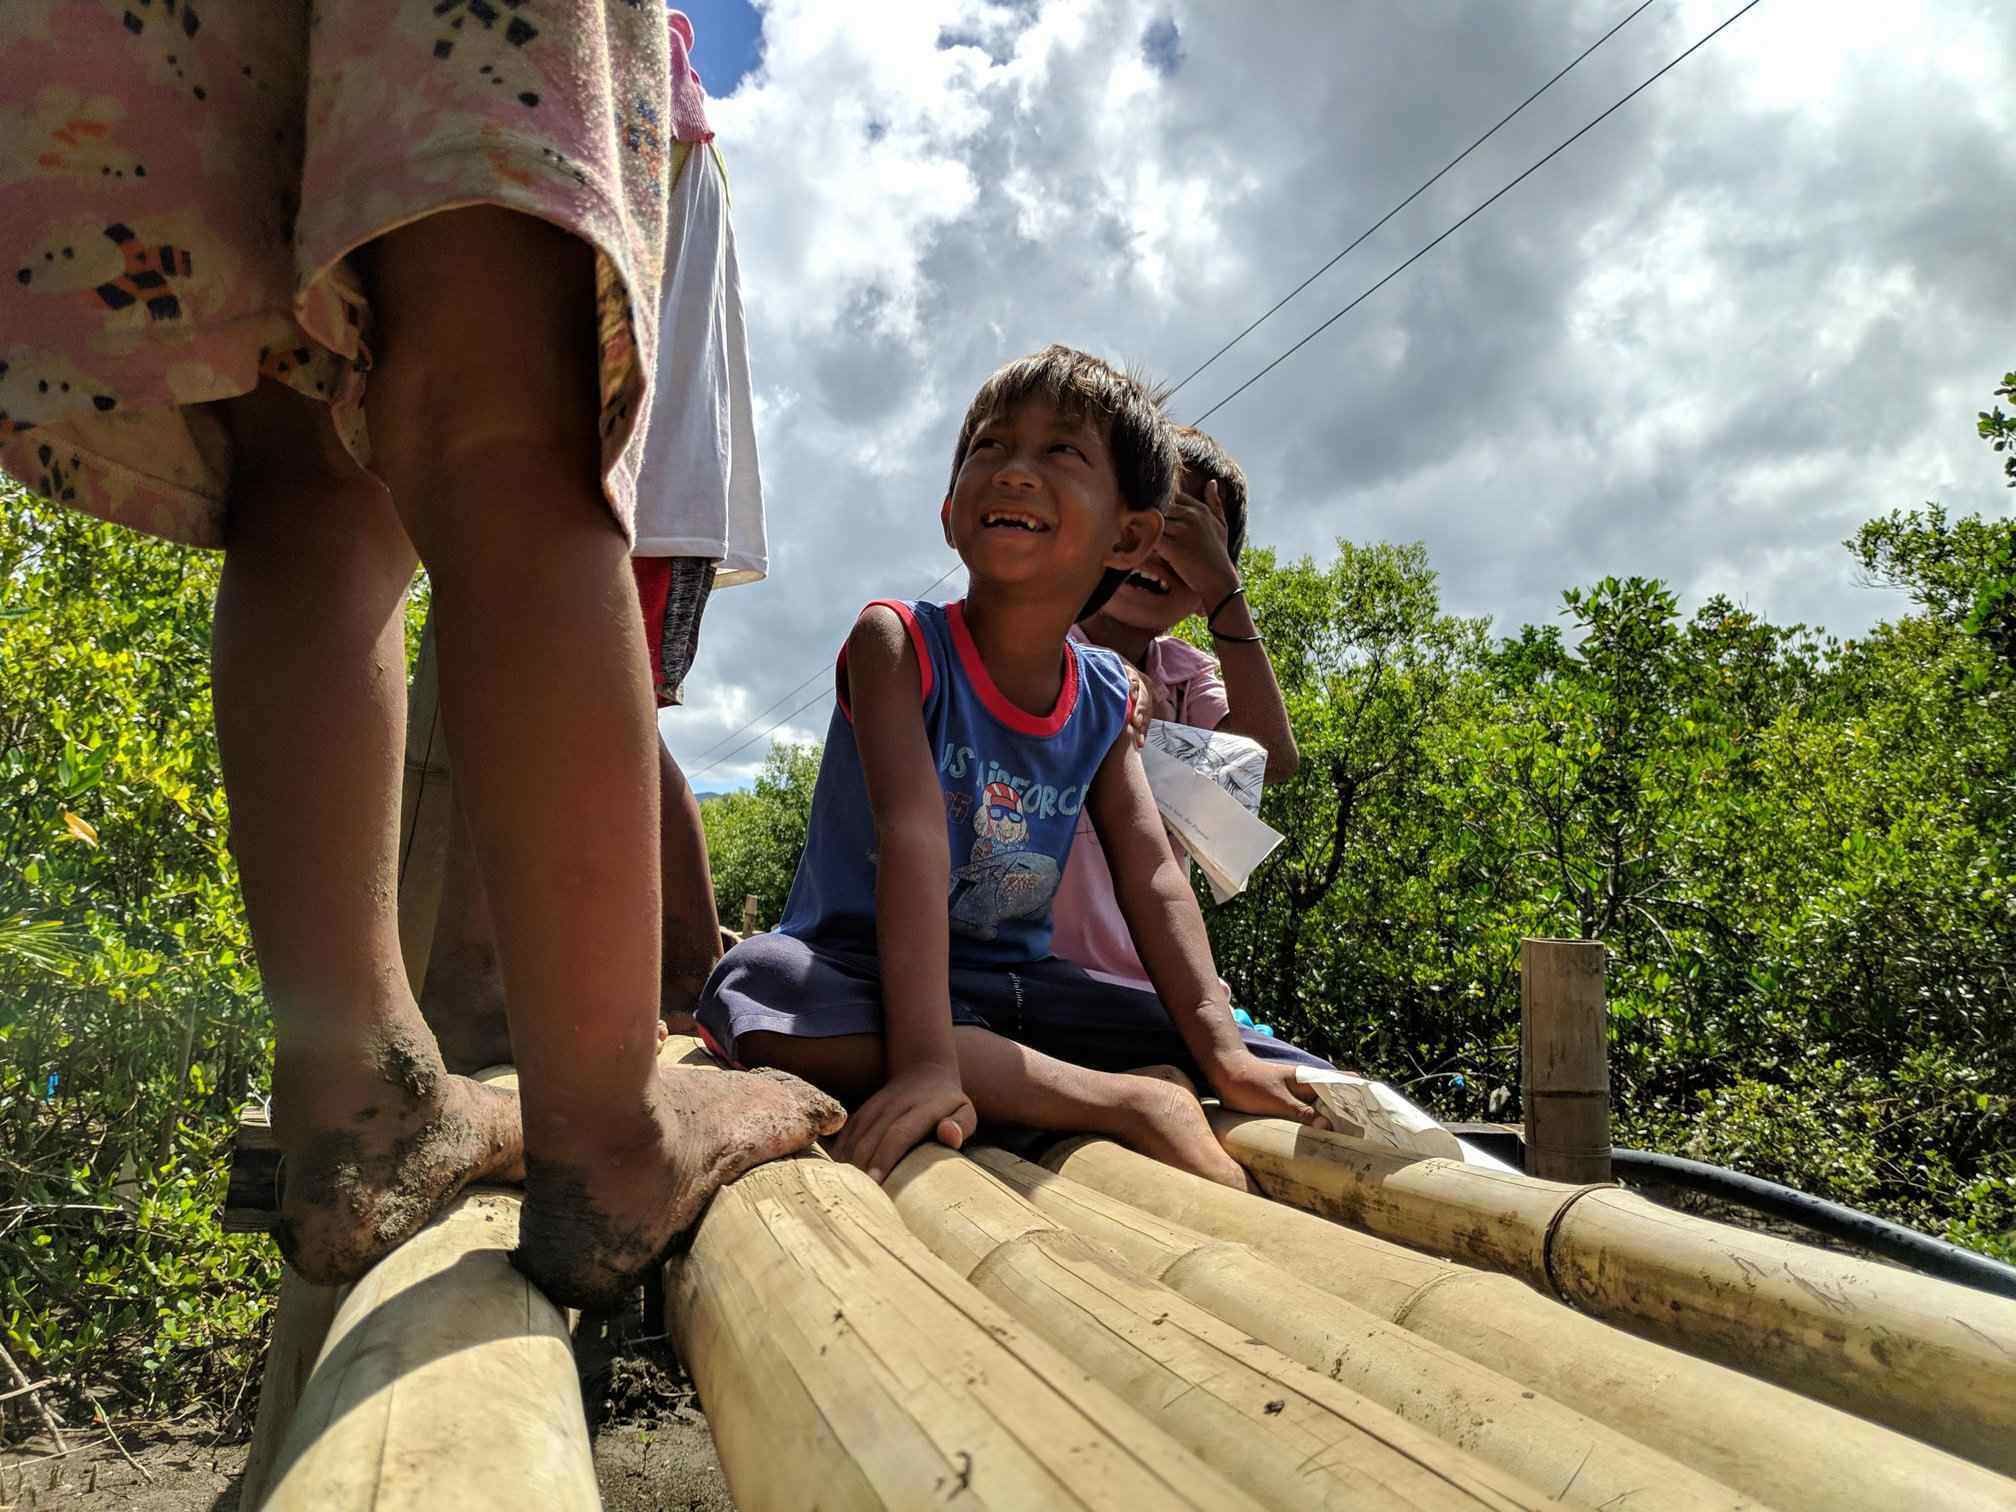 PLAYFUL. Under the scorching sun, Bajau kids play along the long and winding bamboo bridge leading to their community at Sitio Bawod, Isabel, Leyte on March 26, 2019. Photo by Kristian James Valenzona